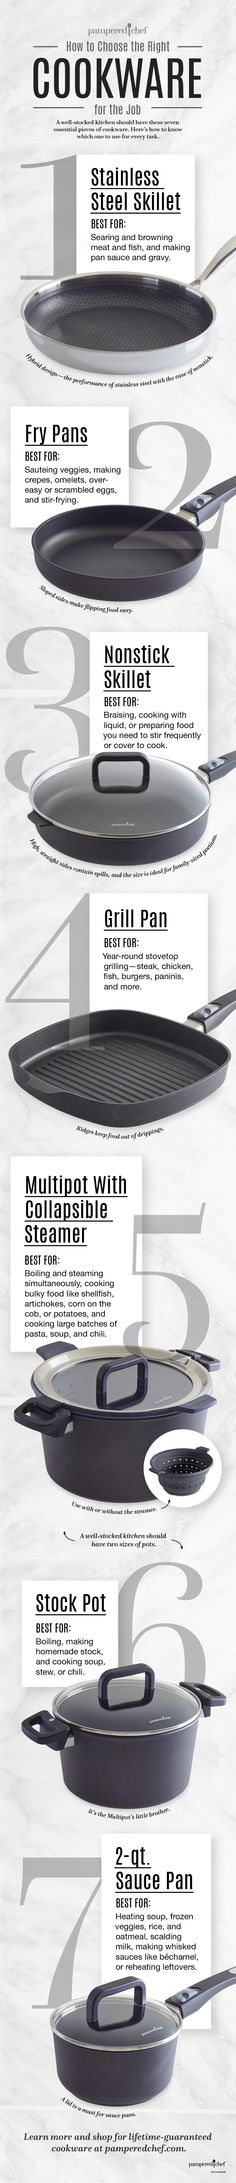 How to Choose the Right Cookware for the Job [Infographic] - Pampered Chef - Deringa Pampered Chef Party, Pampered Chef Recipes, Cooking Tools, Kitchen Hacks, Food Hacks, Food Tips, Cookware, Food Inspiration